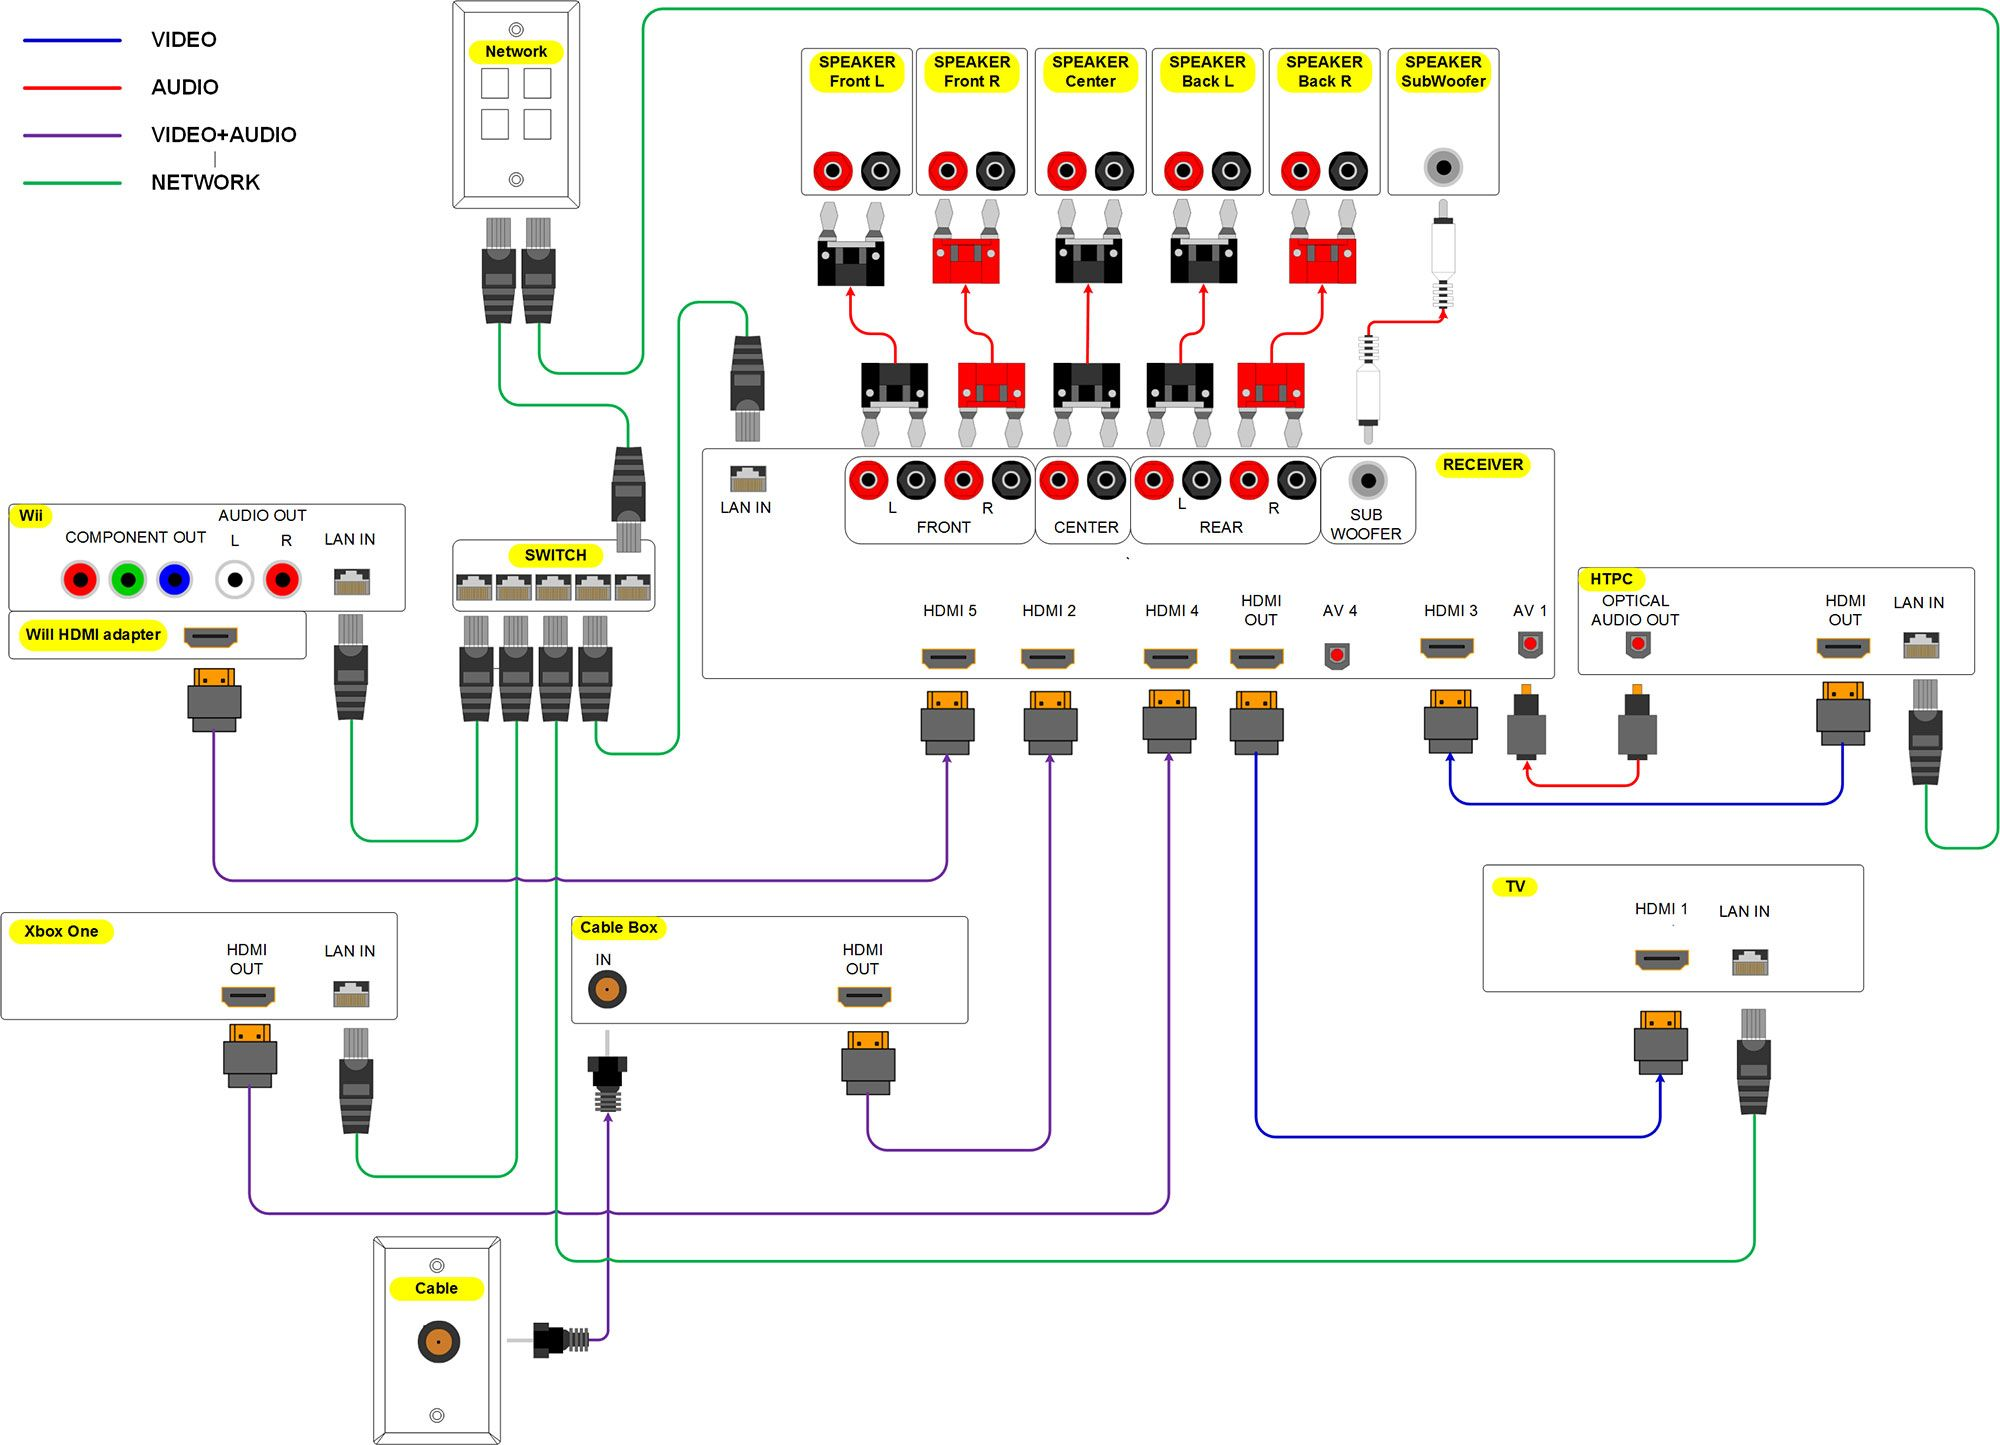 home theater wiring diagram click it to see the big 2000 pixel rh pinterest com home theatre speaker wiring home theater speaker wiring diagrams